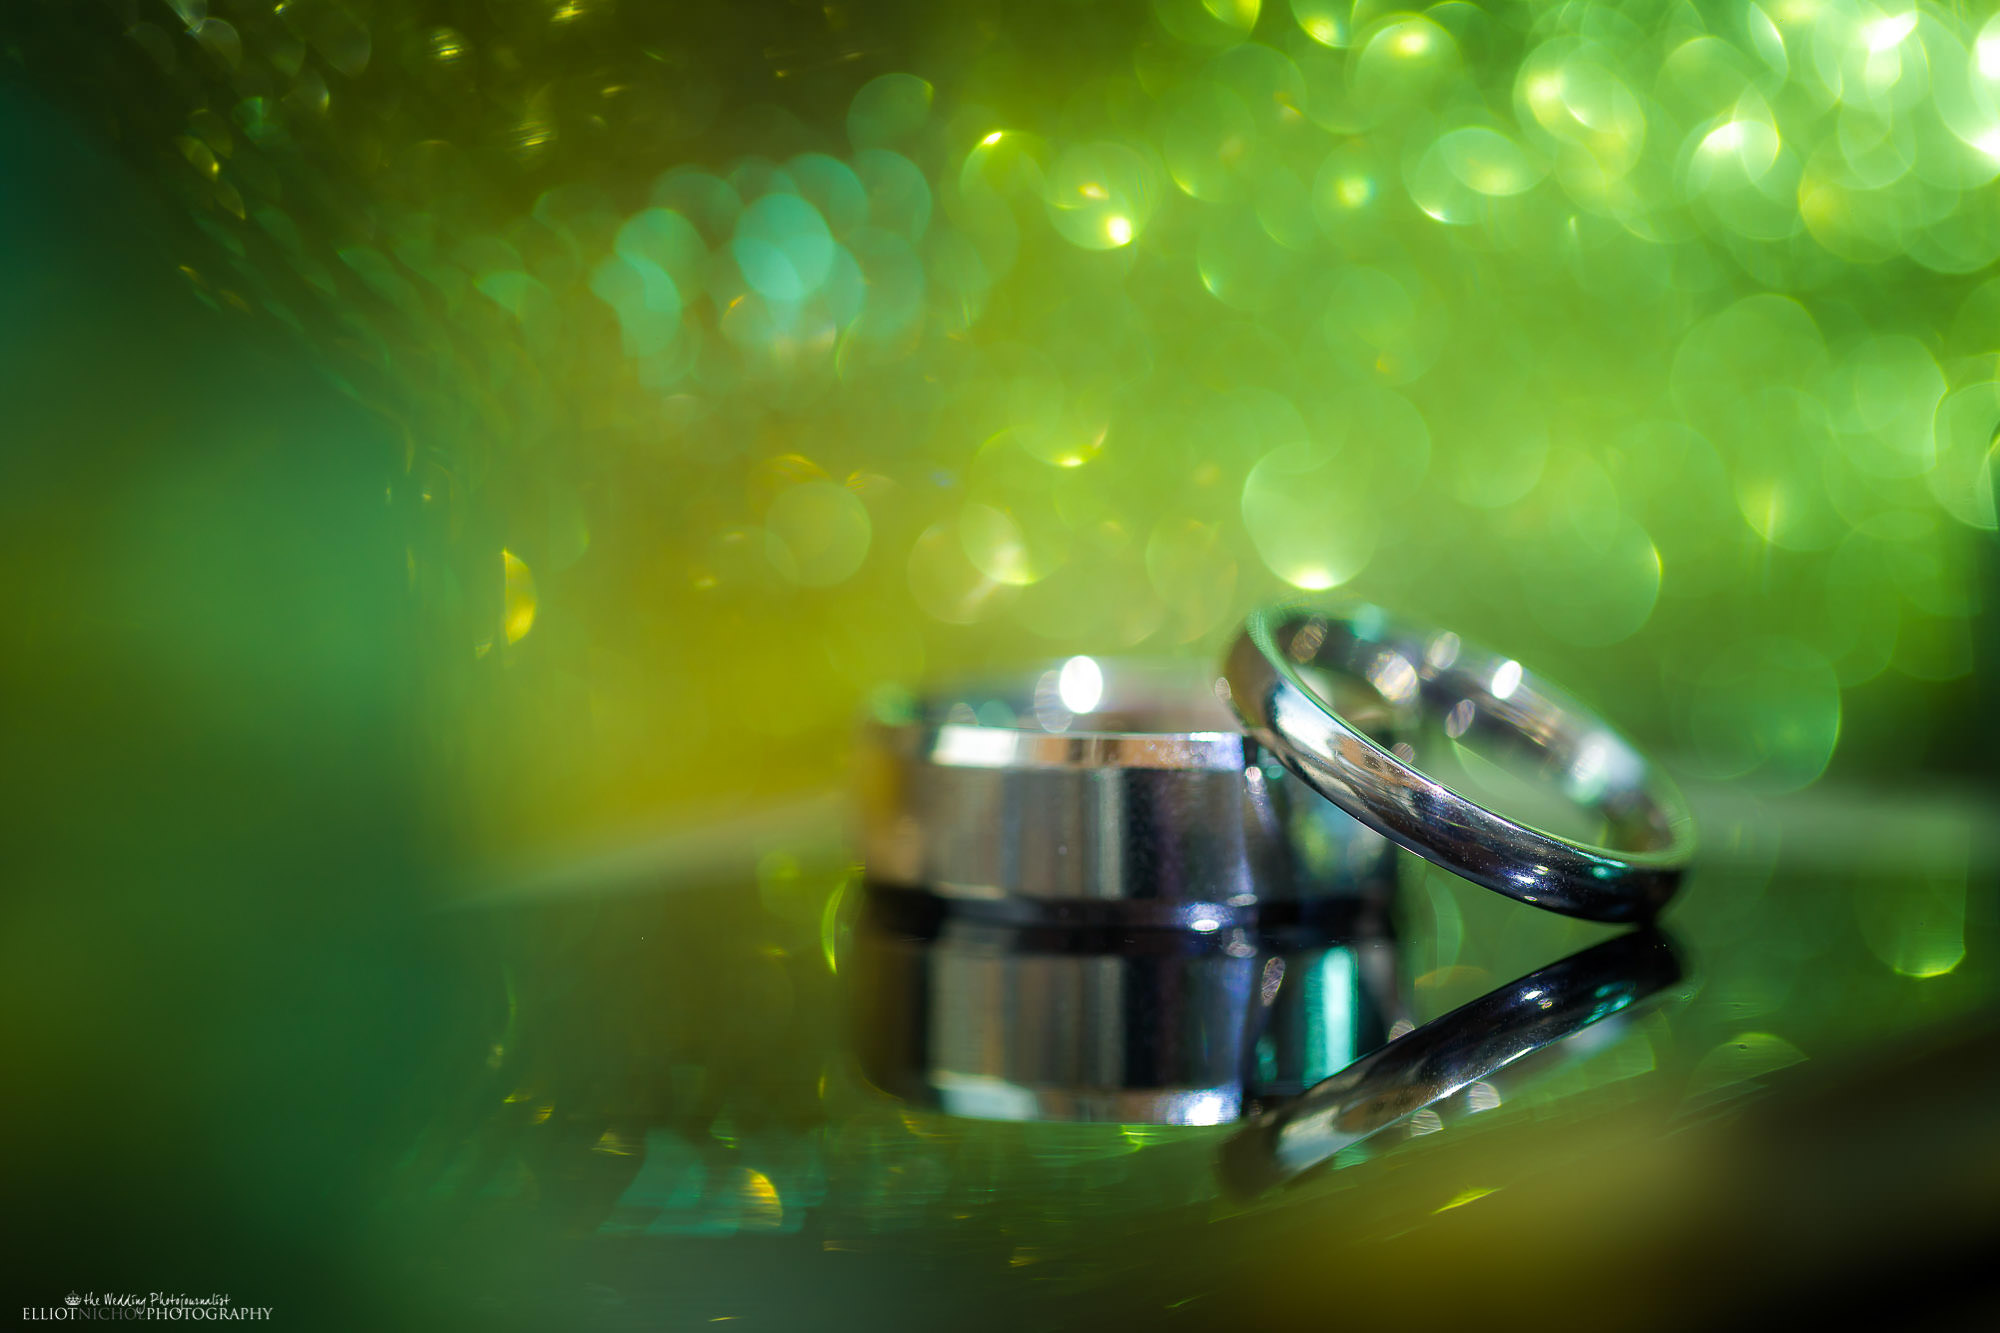 wedding-rings-photography-macro-bride-groom